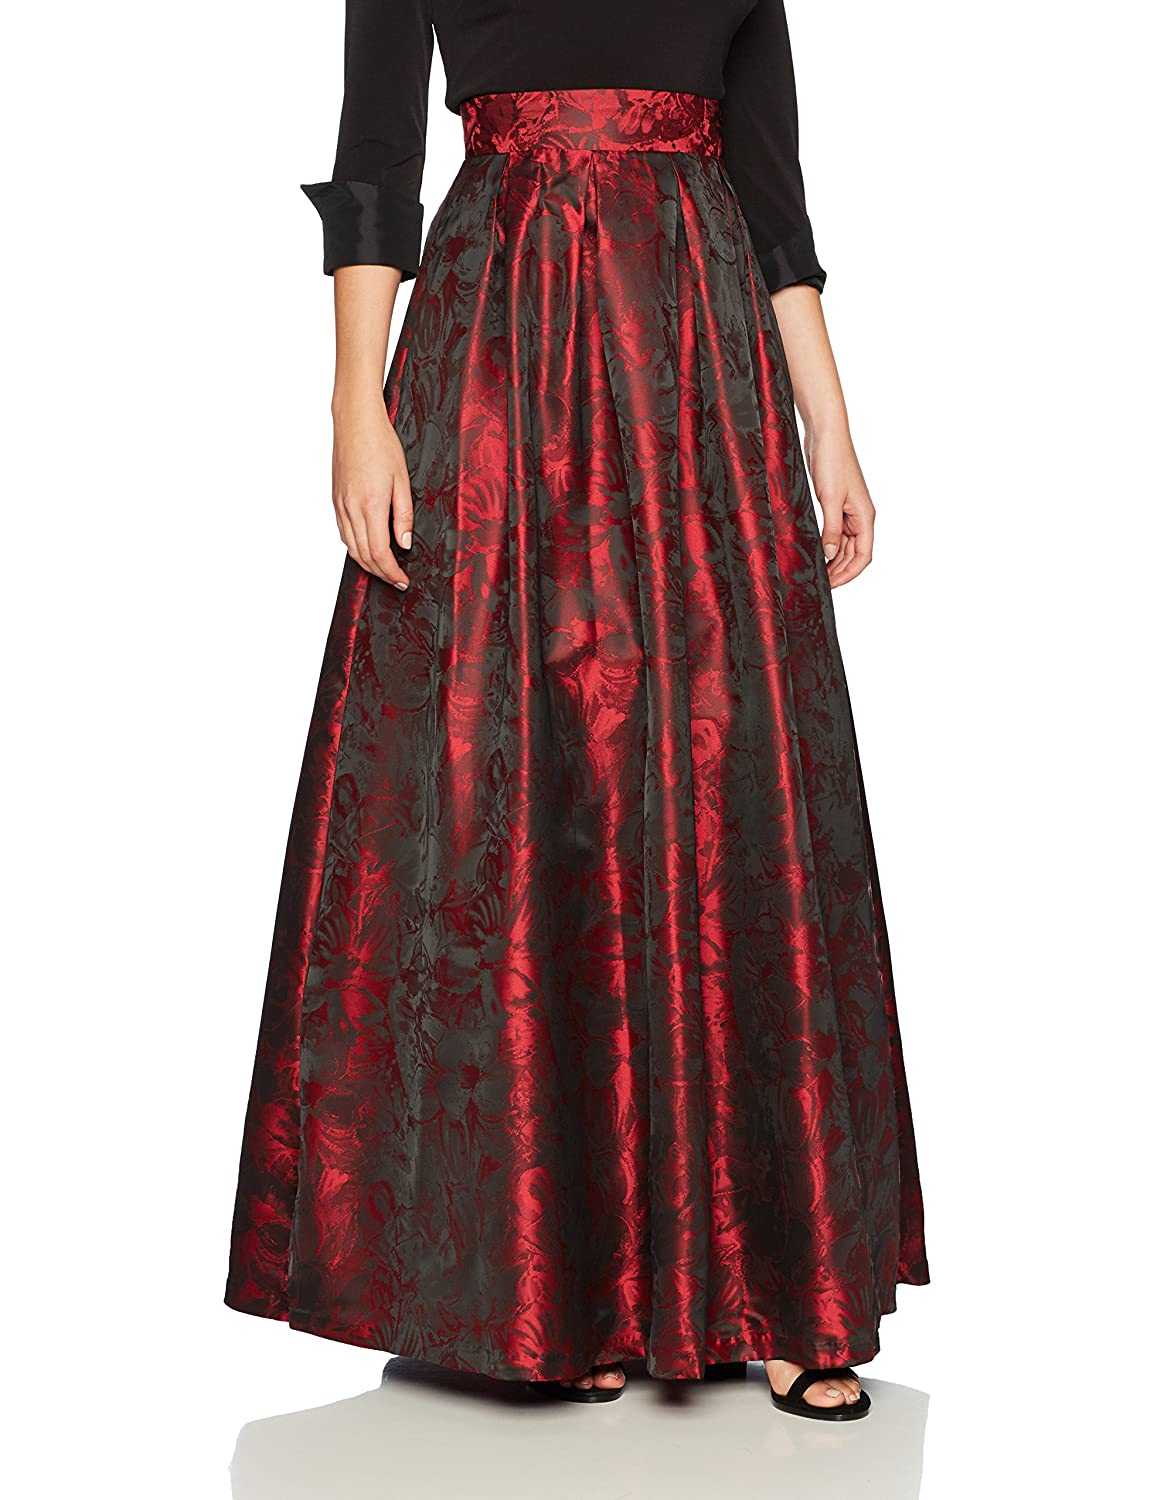 1950s Swing Skirt, Poodle Skirt, Pencil Skirts Jessica Howard Womens Separate Ballgown Skirt $138.00 AT vintagedancer.com